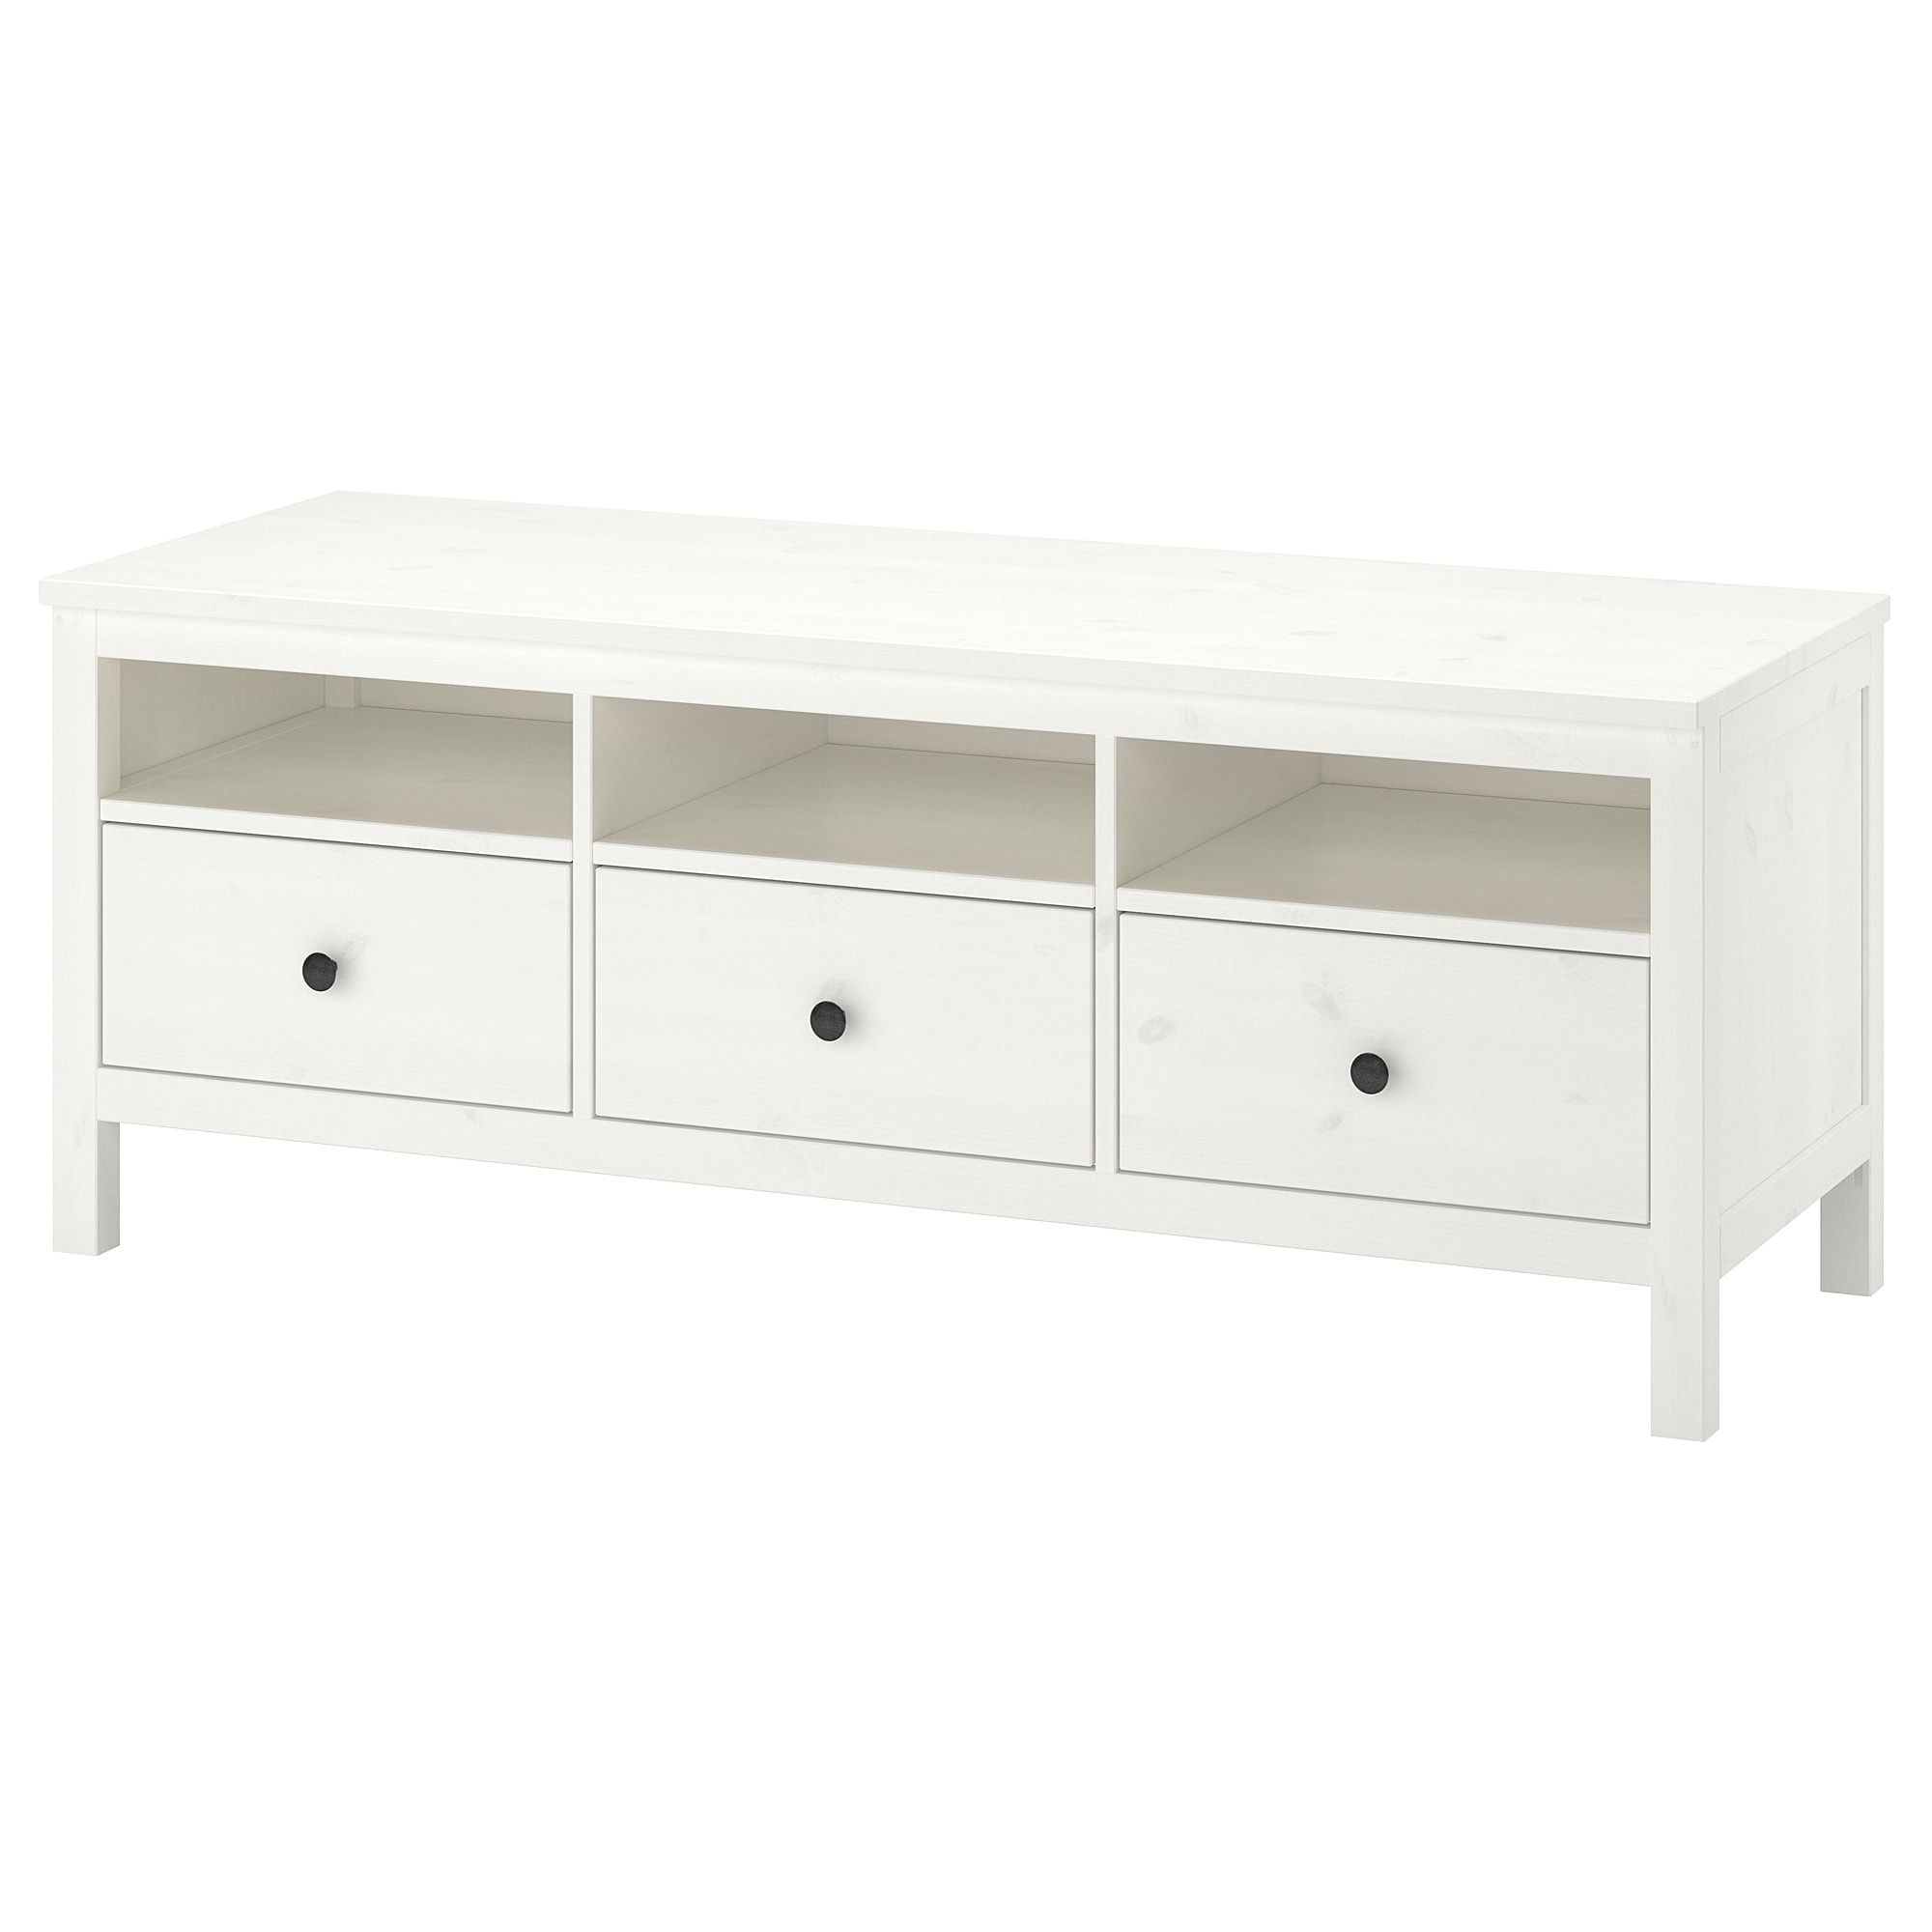 Hemnes Tv Unit White Stain Light Brown 58 1 4x18 1 2x22 1 2